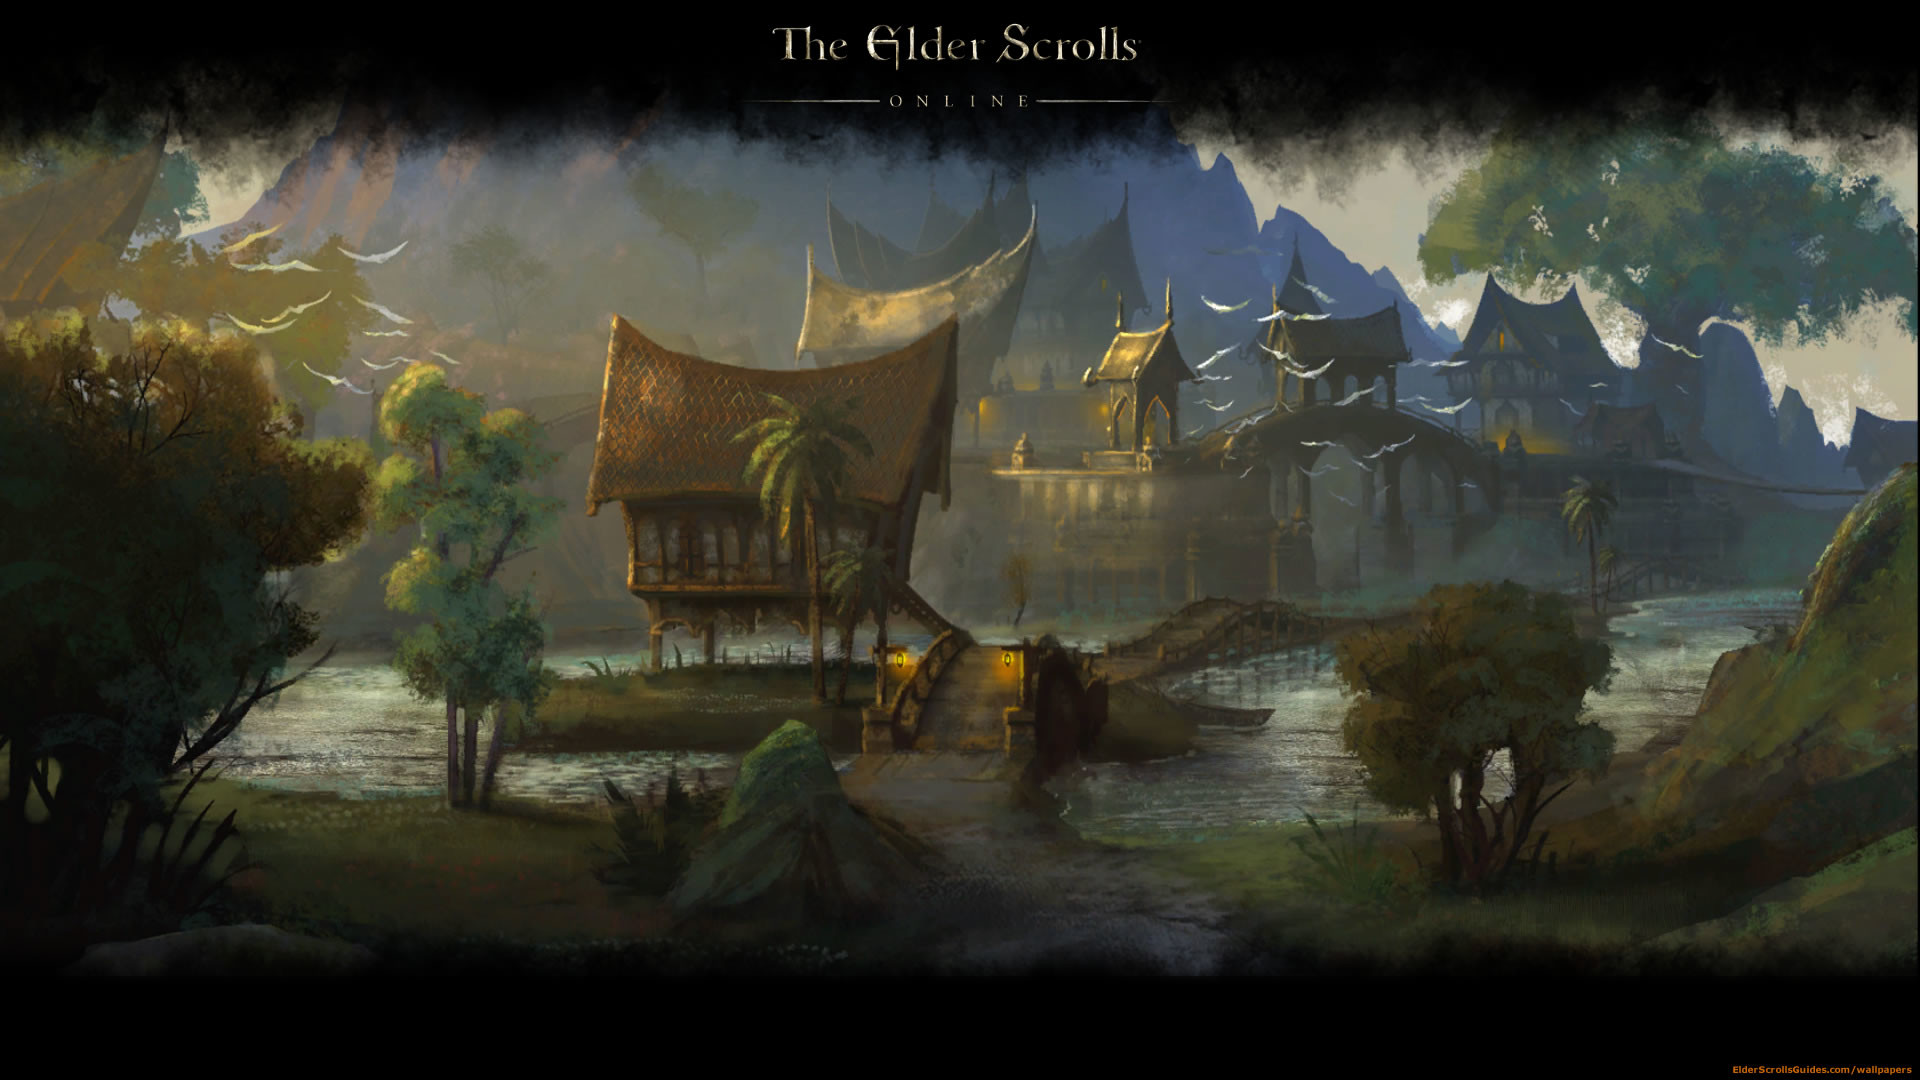 The Elder Scrolls Wallpaper: Eso HD Wallpapers (86+ Images